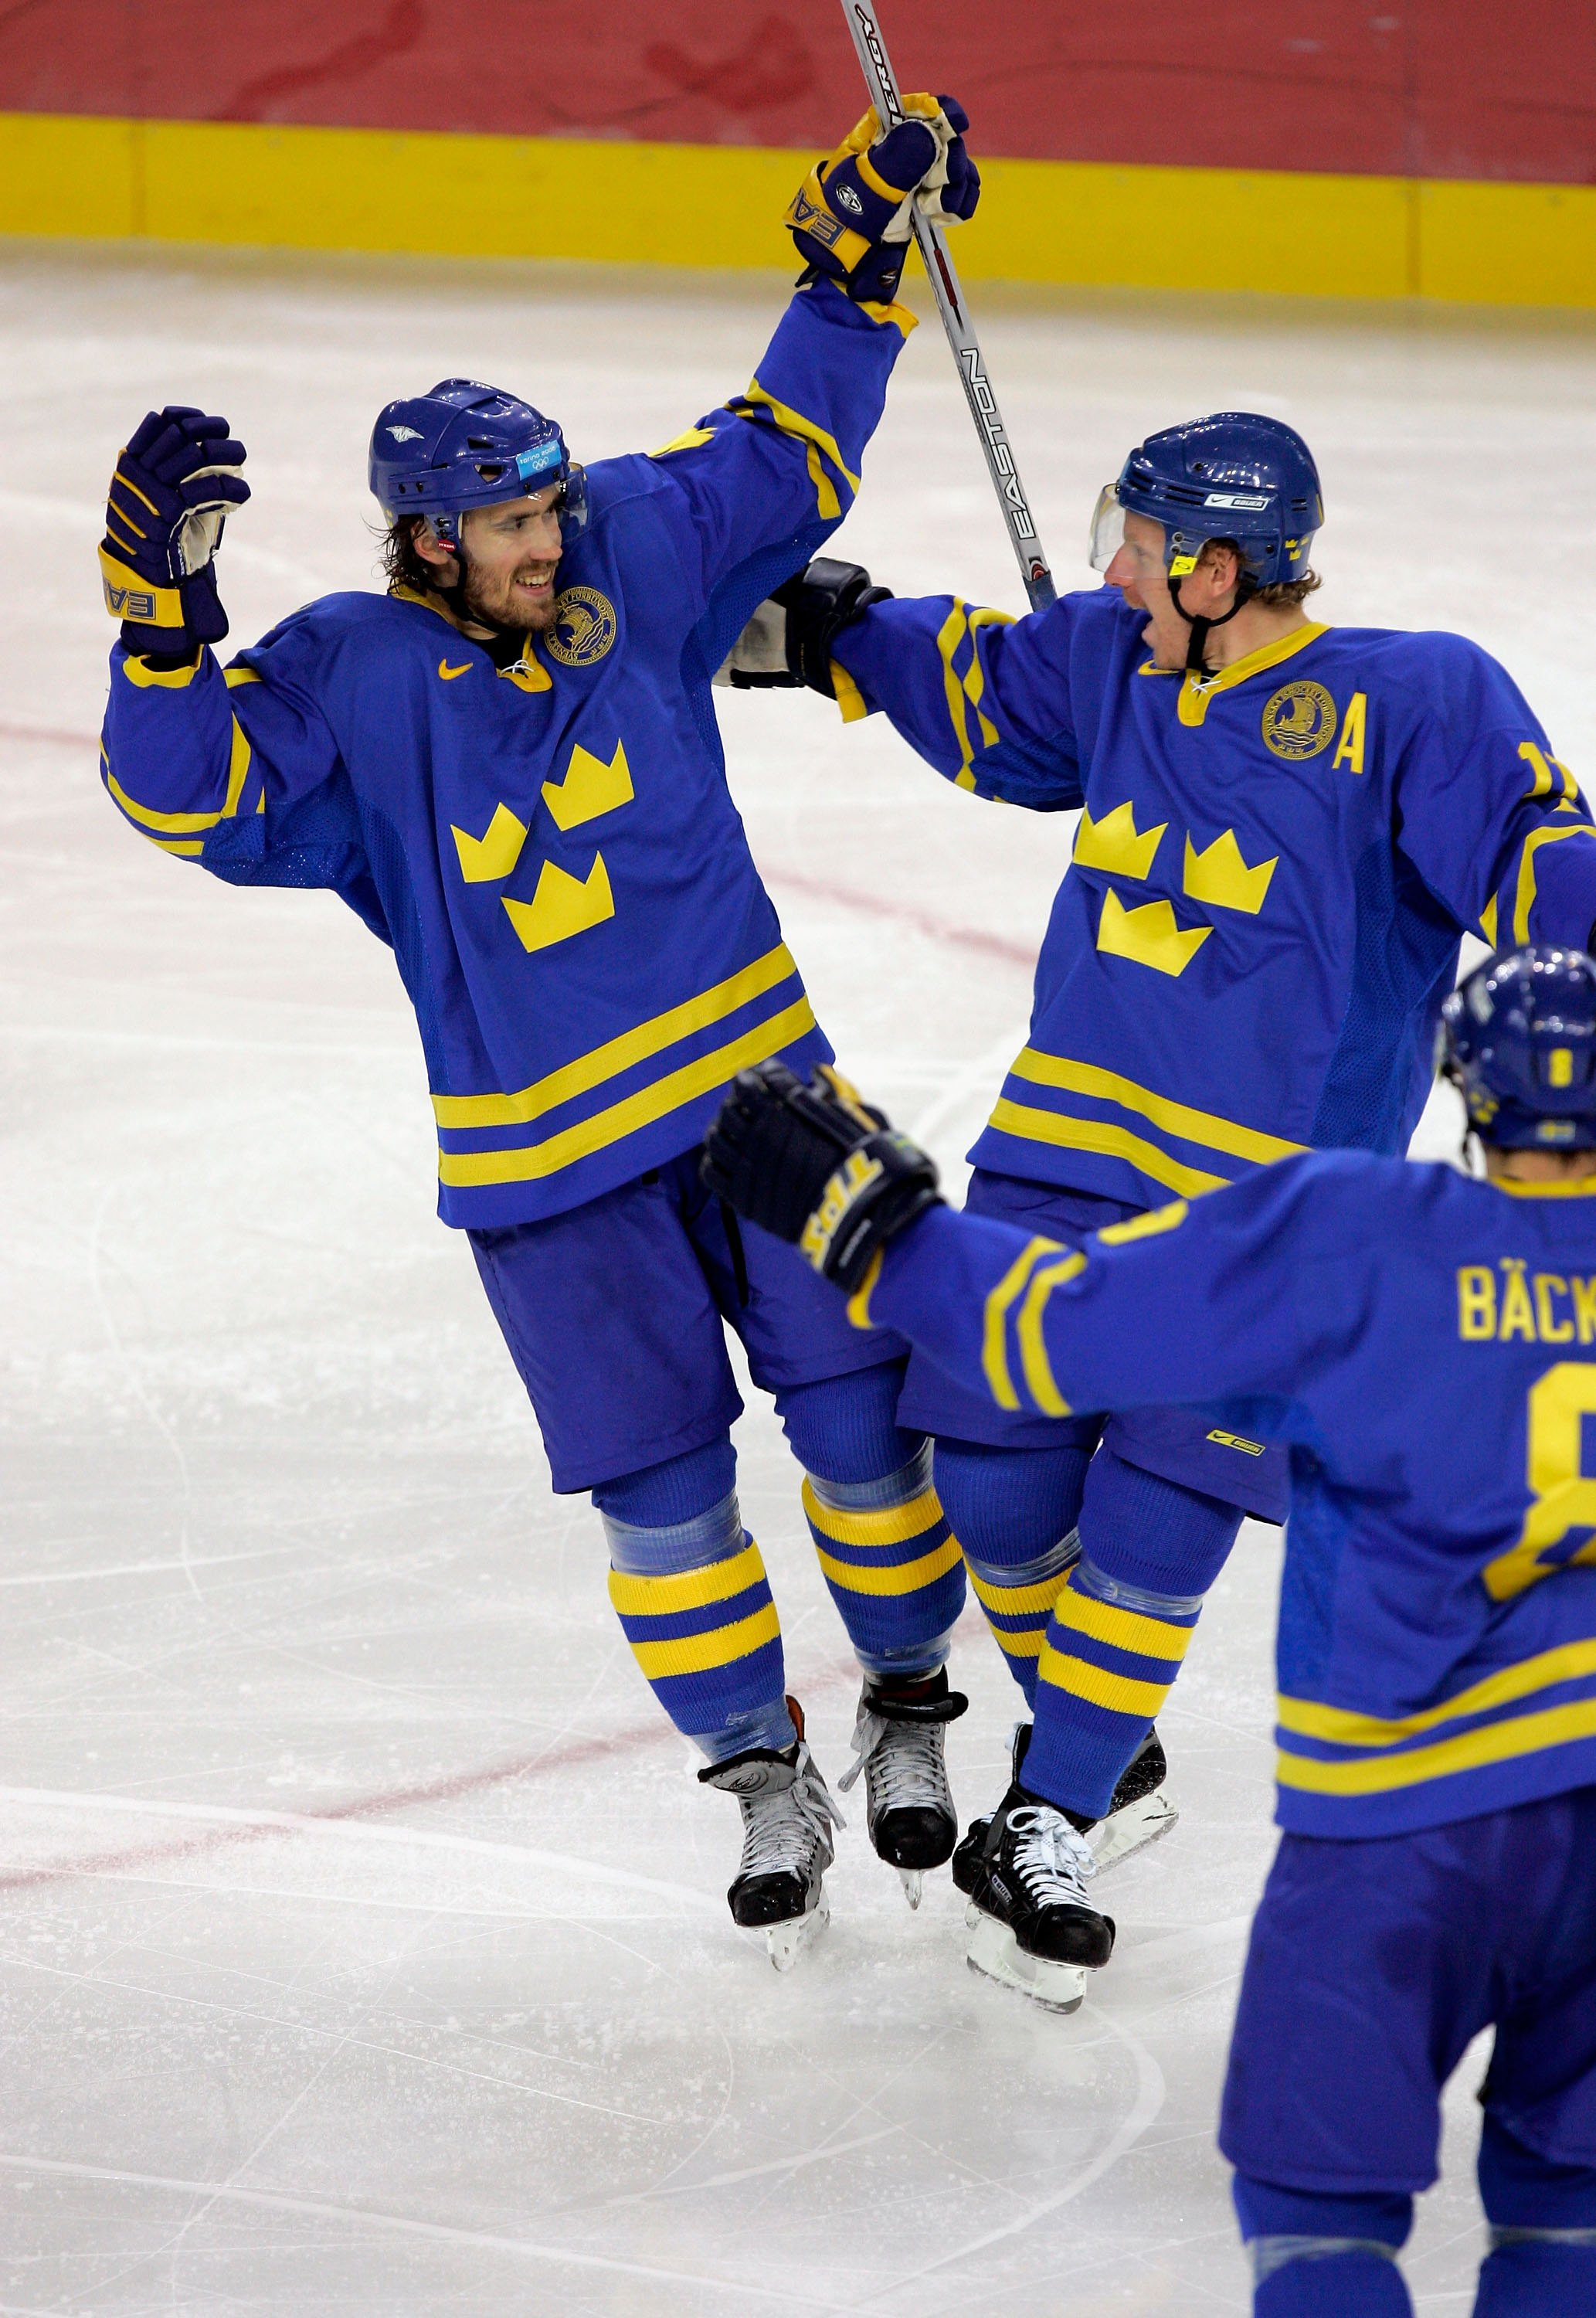 TURIN, ITALY - FEBRUARY 26:  Henrik Zetterberg #40 of Sweden is congratulated by teammates Daniel Alfredsson #11 and Christian Backman #8 after scoring in the second period to make the score 1-1 during the final of the men's ice hockey match between Finla